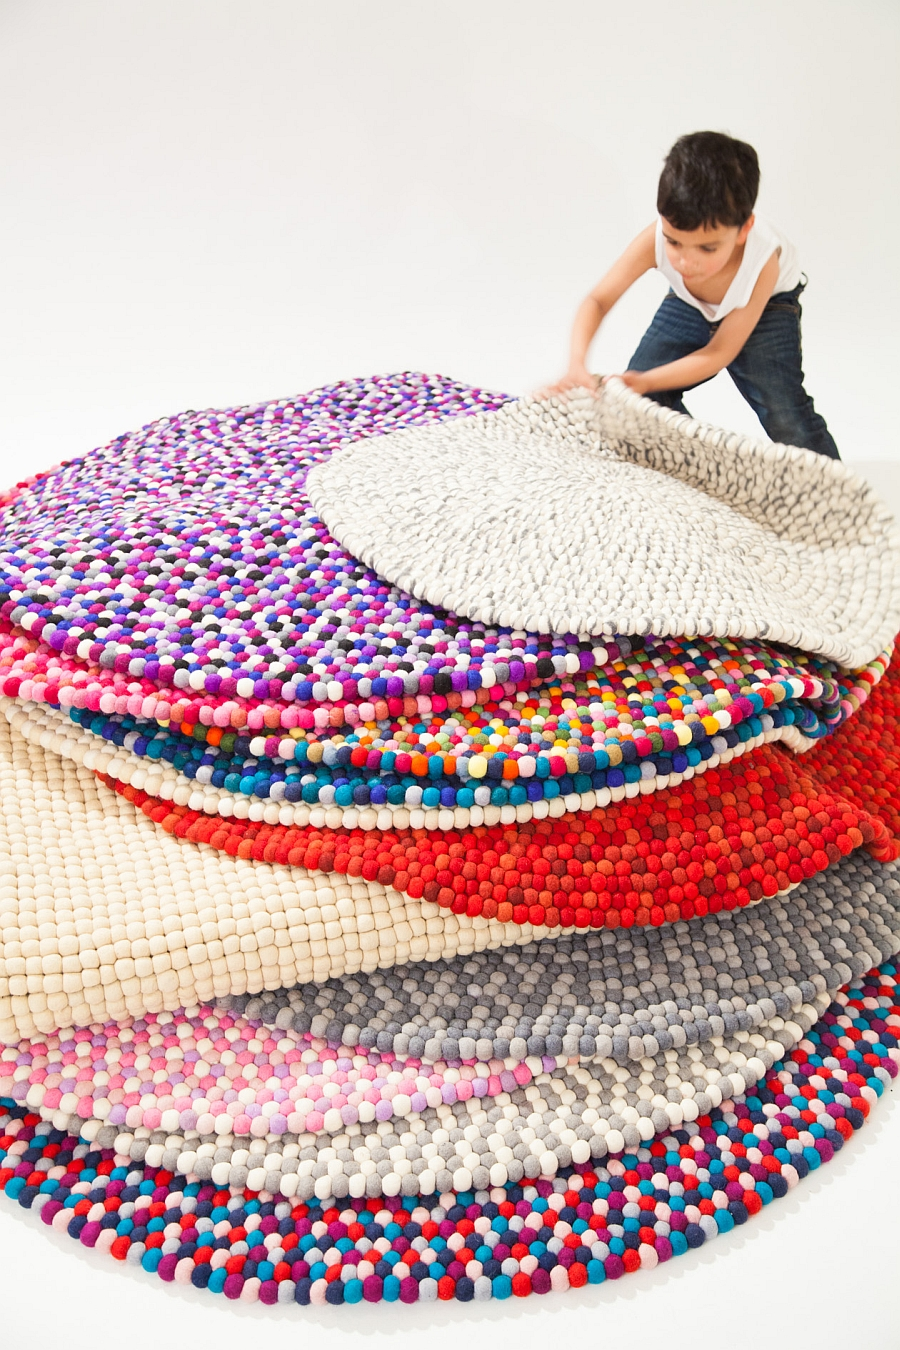 Colorful pile of felt ball rugs crafted from the finest wool